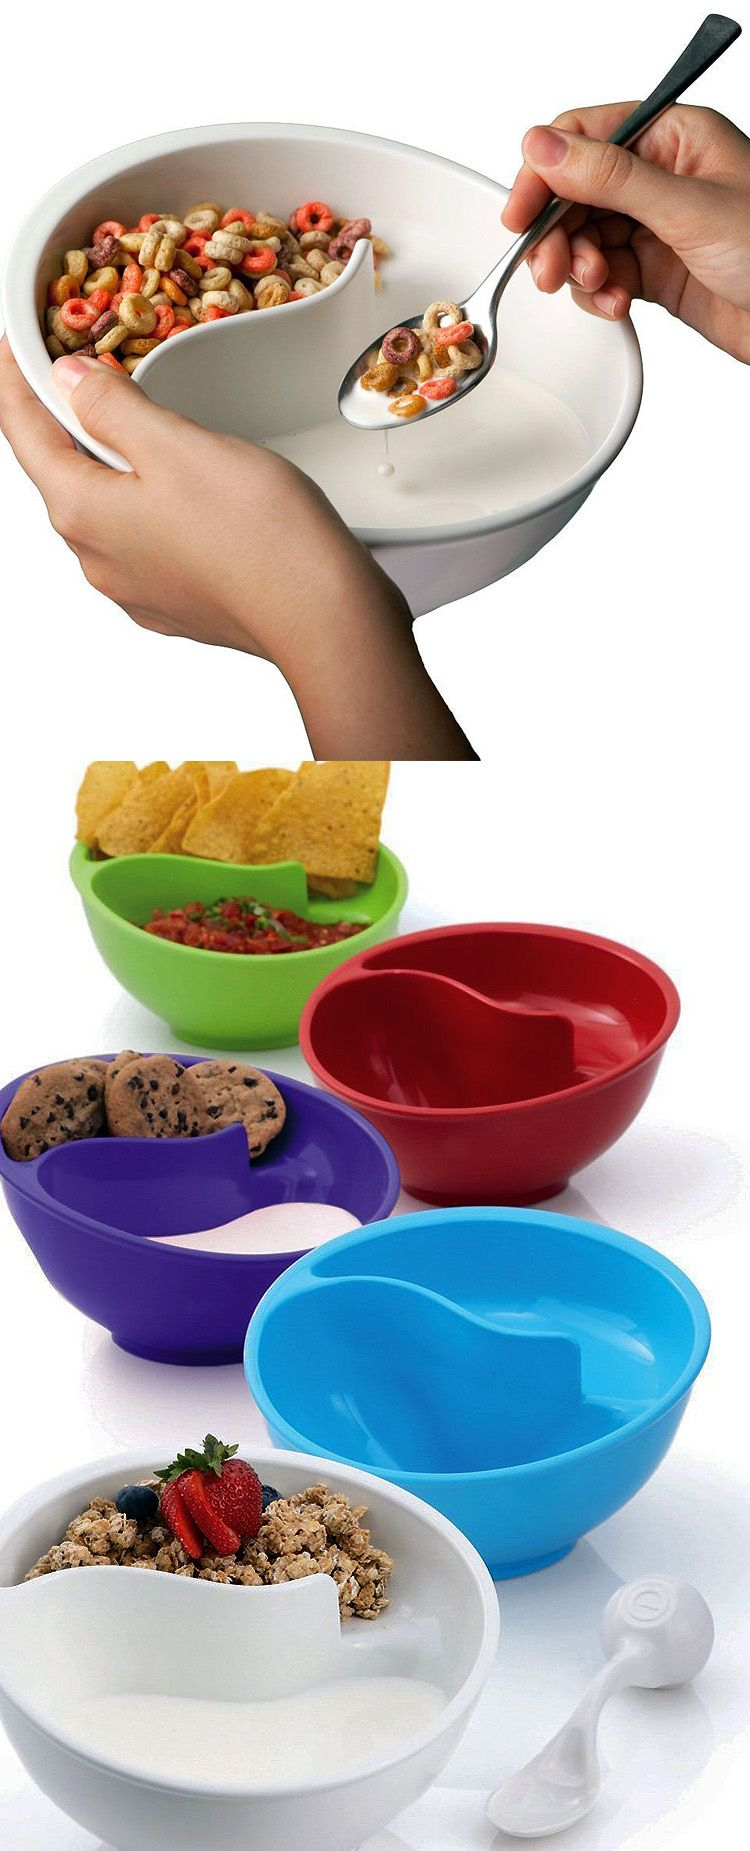 Never soggy cereal bowl by obol utensilios utensilios for Utensilios alta cocina